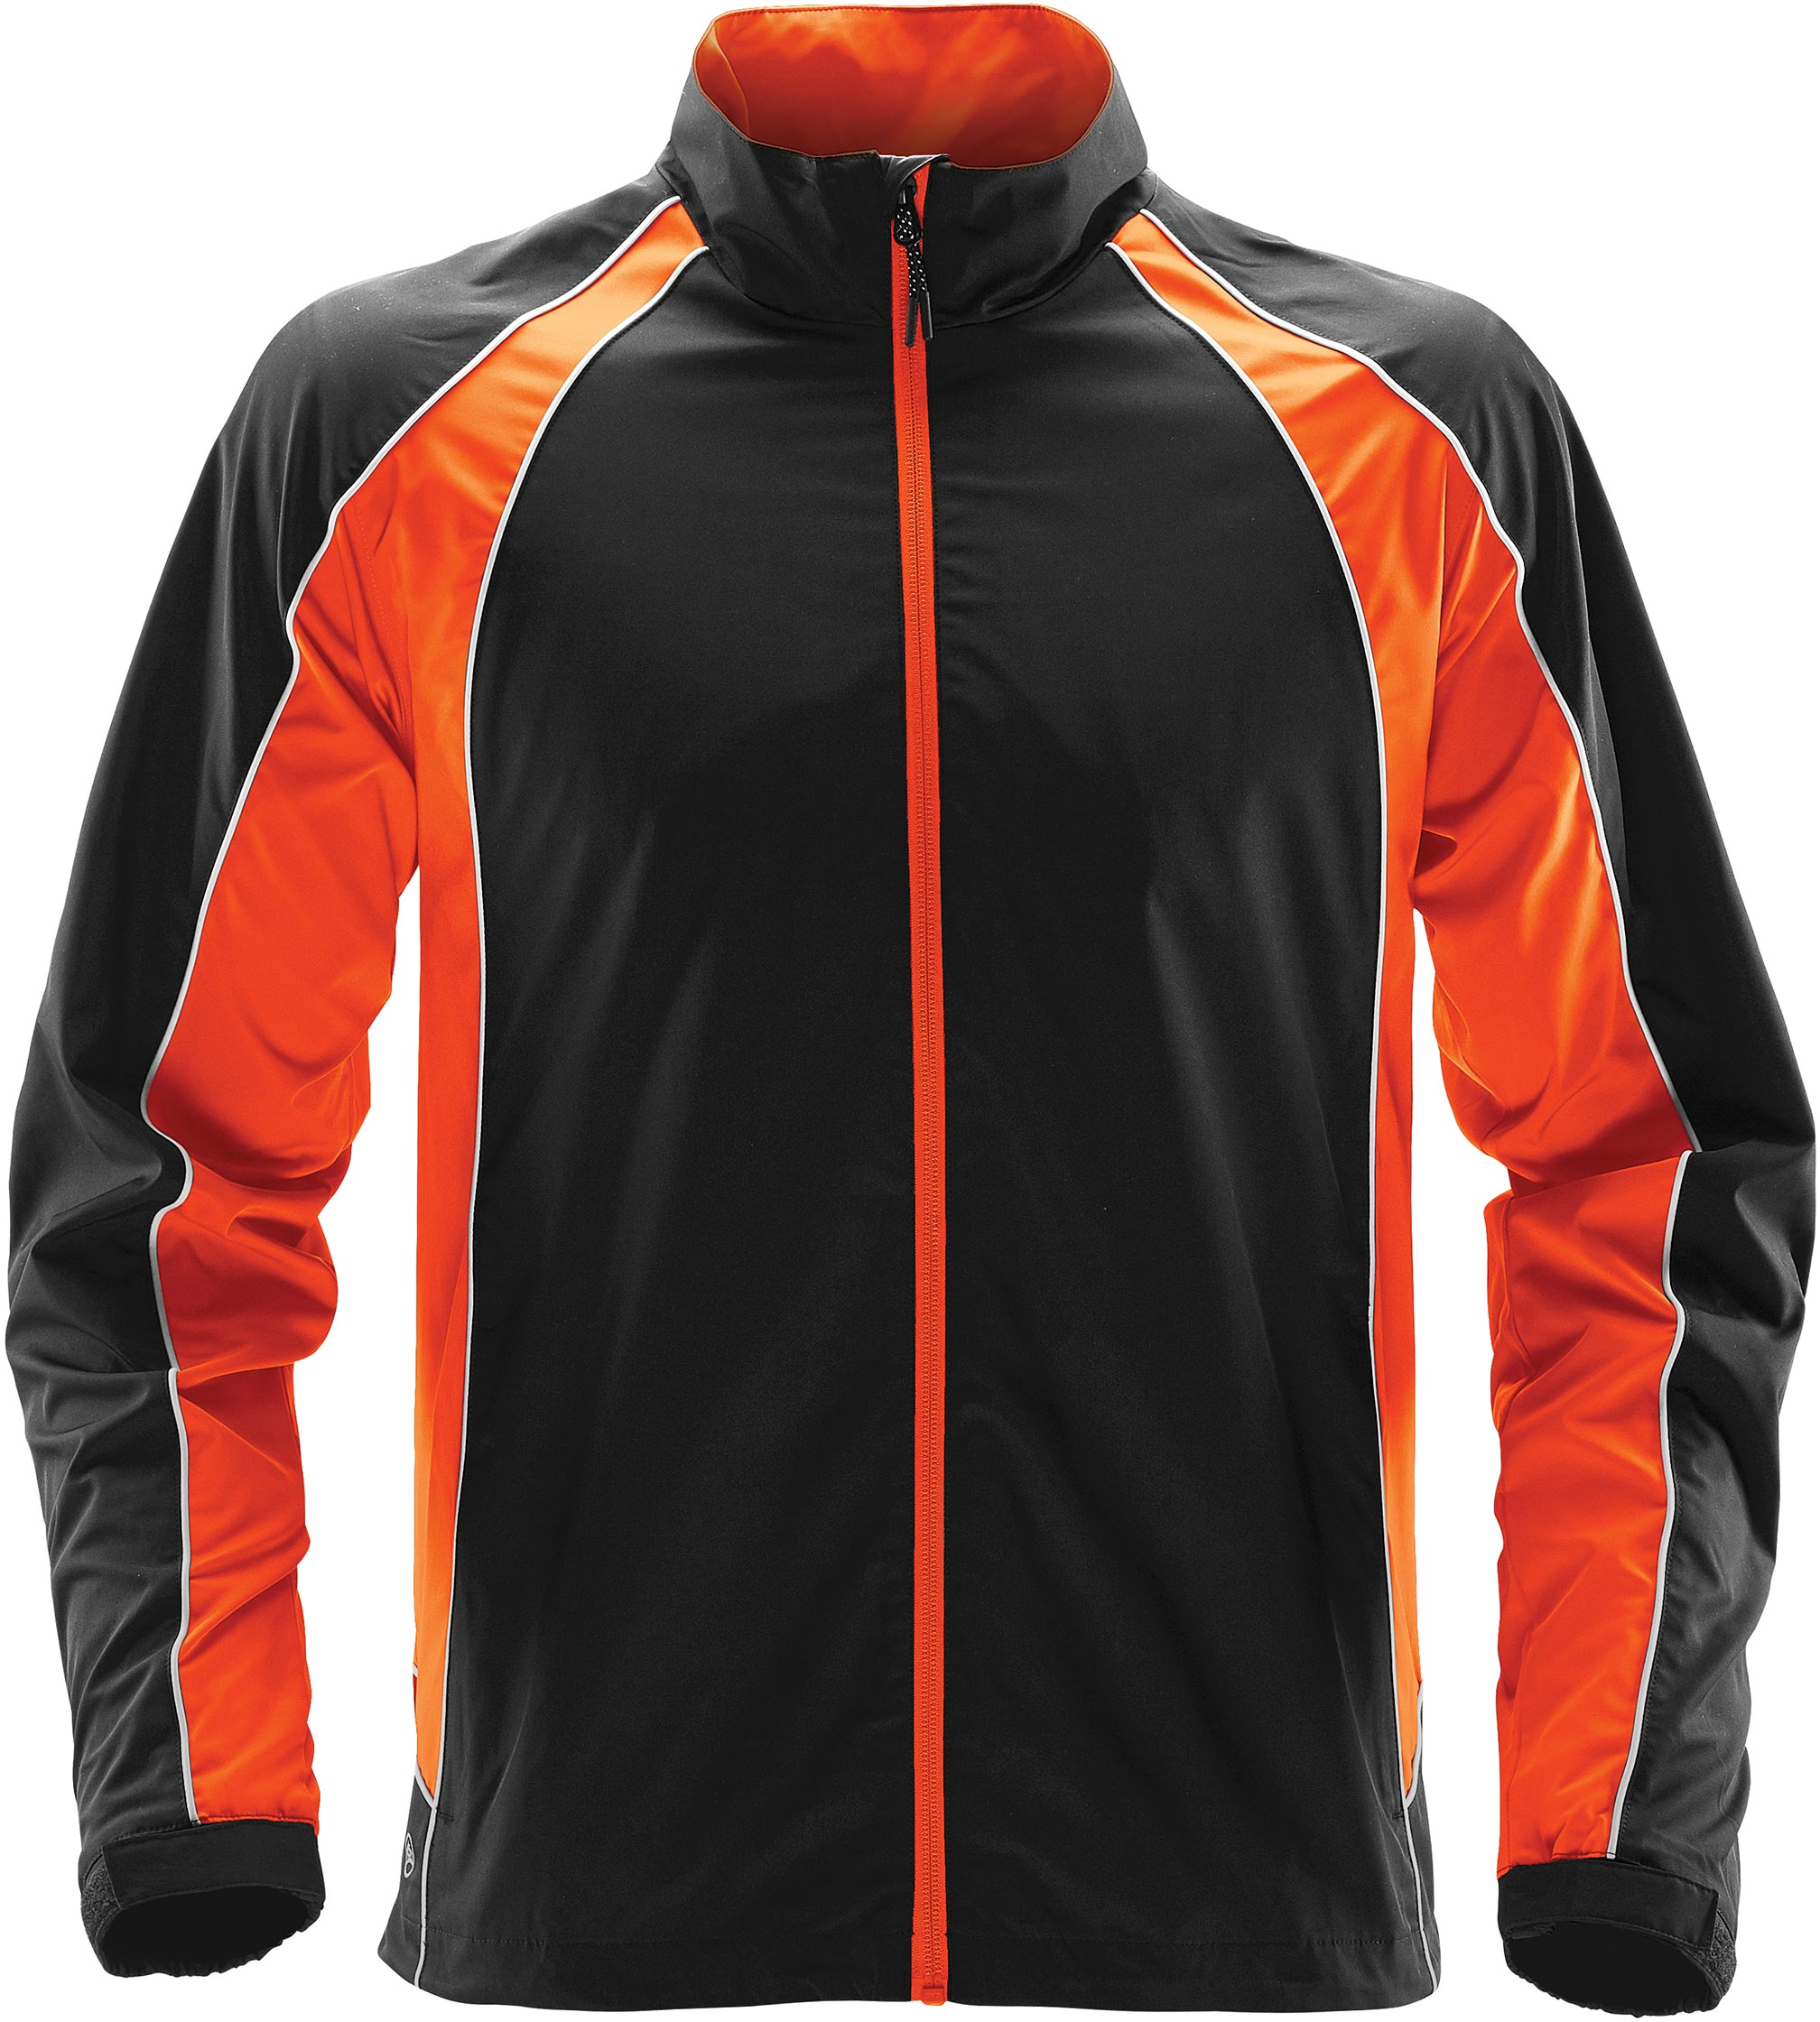 Stormtech STXJ-2Y - Youth Warrior Training Jacket